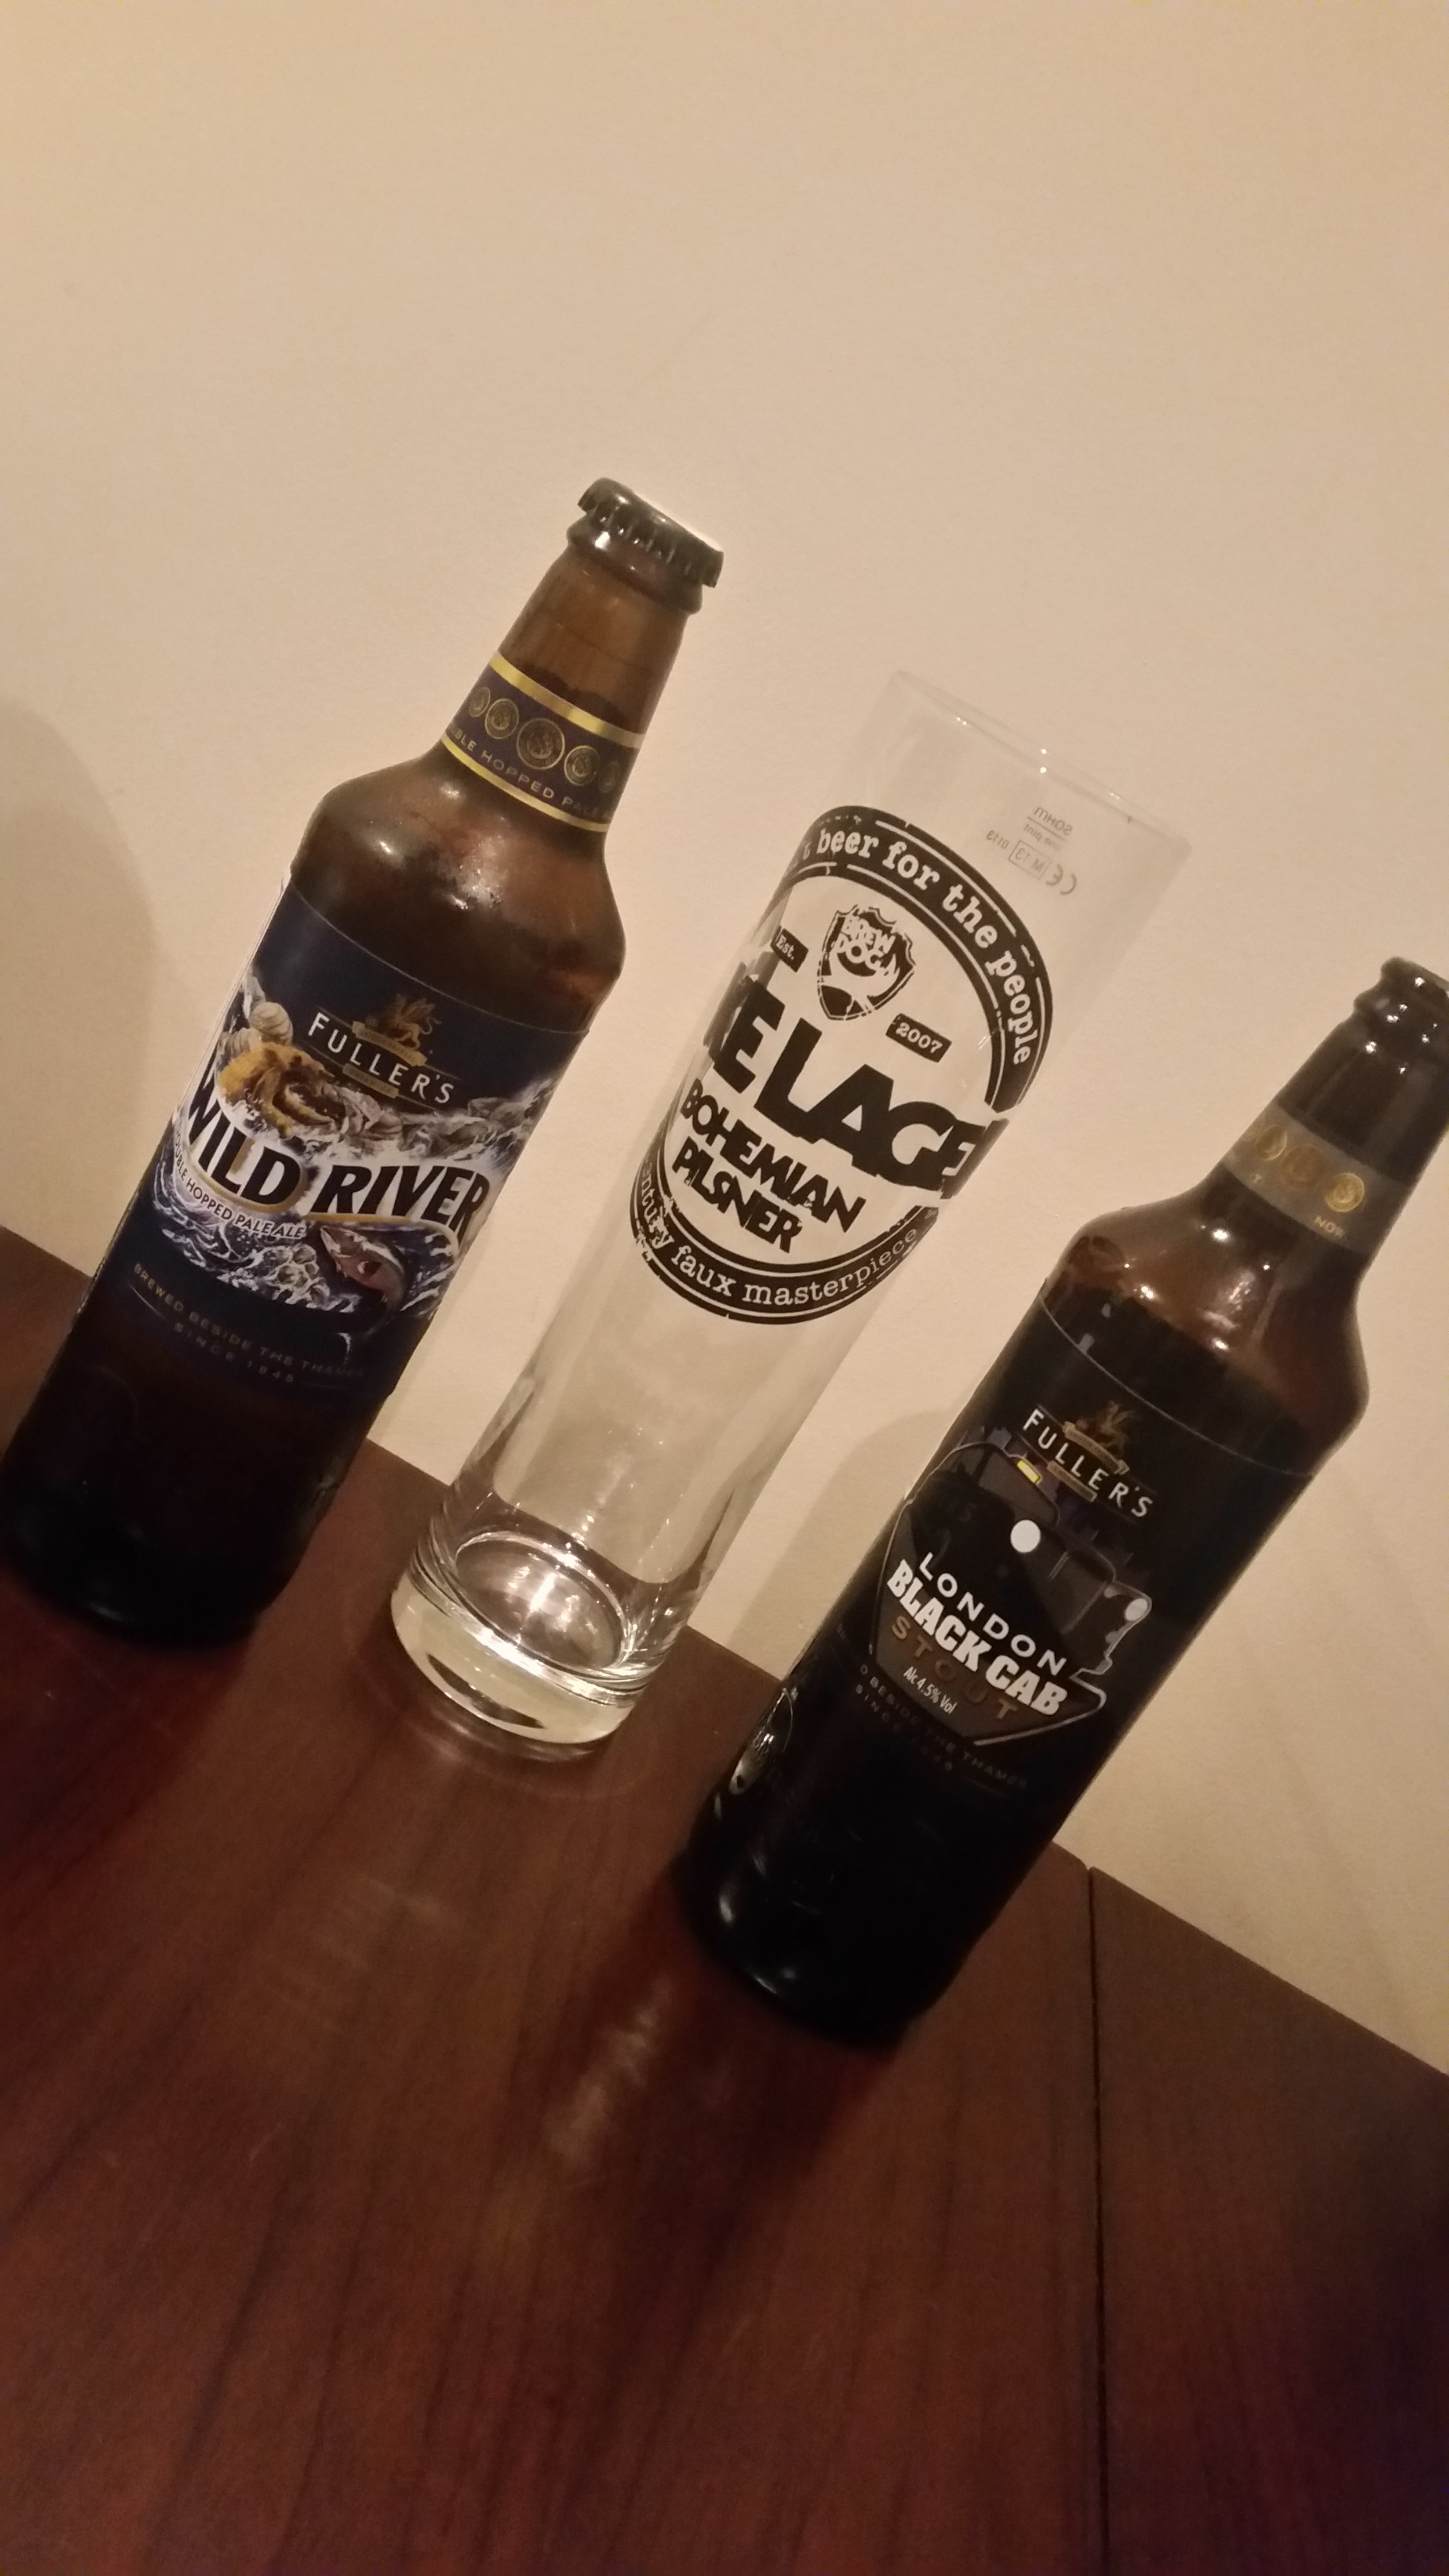 Wild River and Black Cab Stout